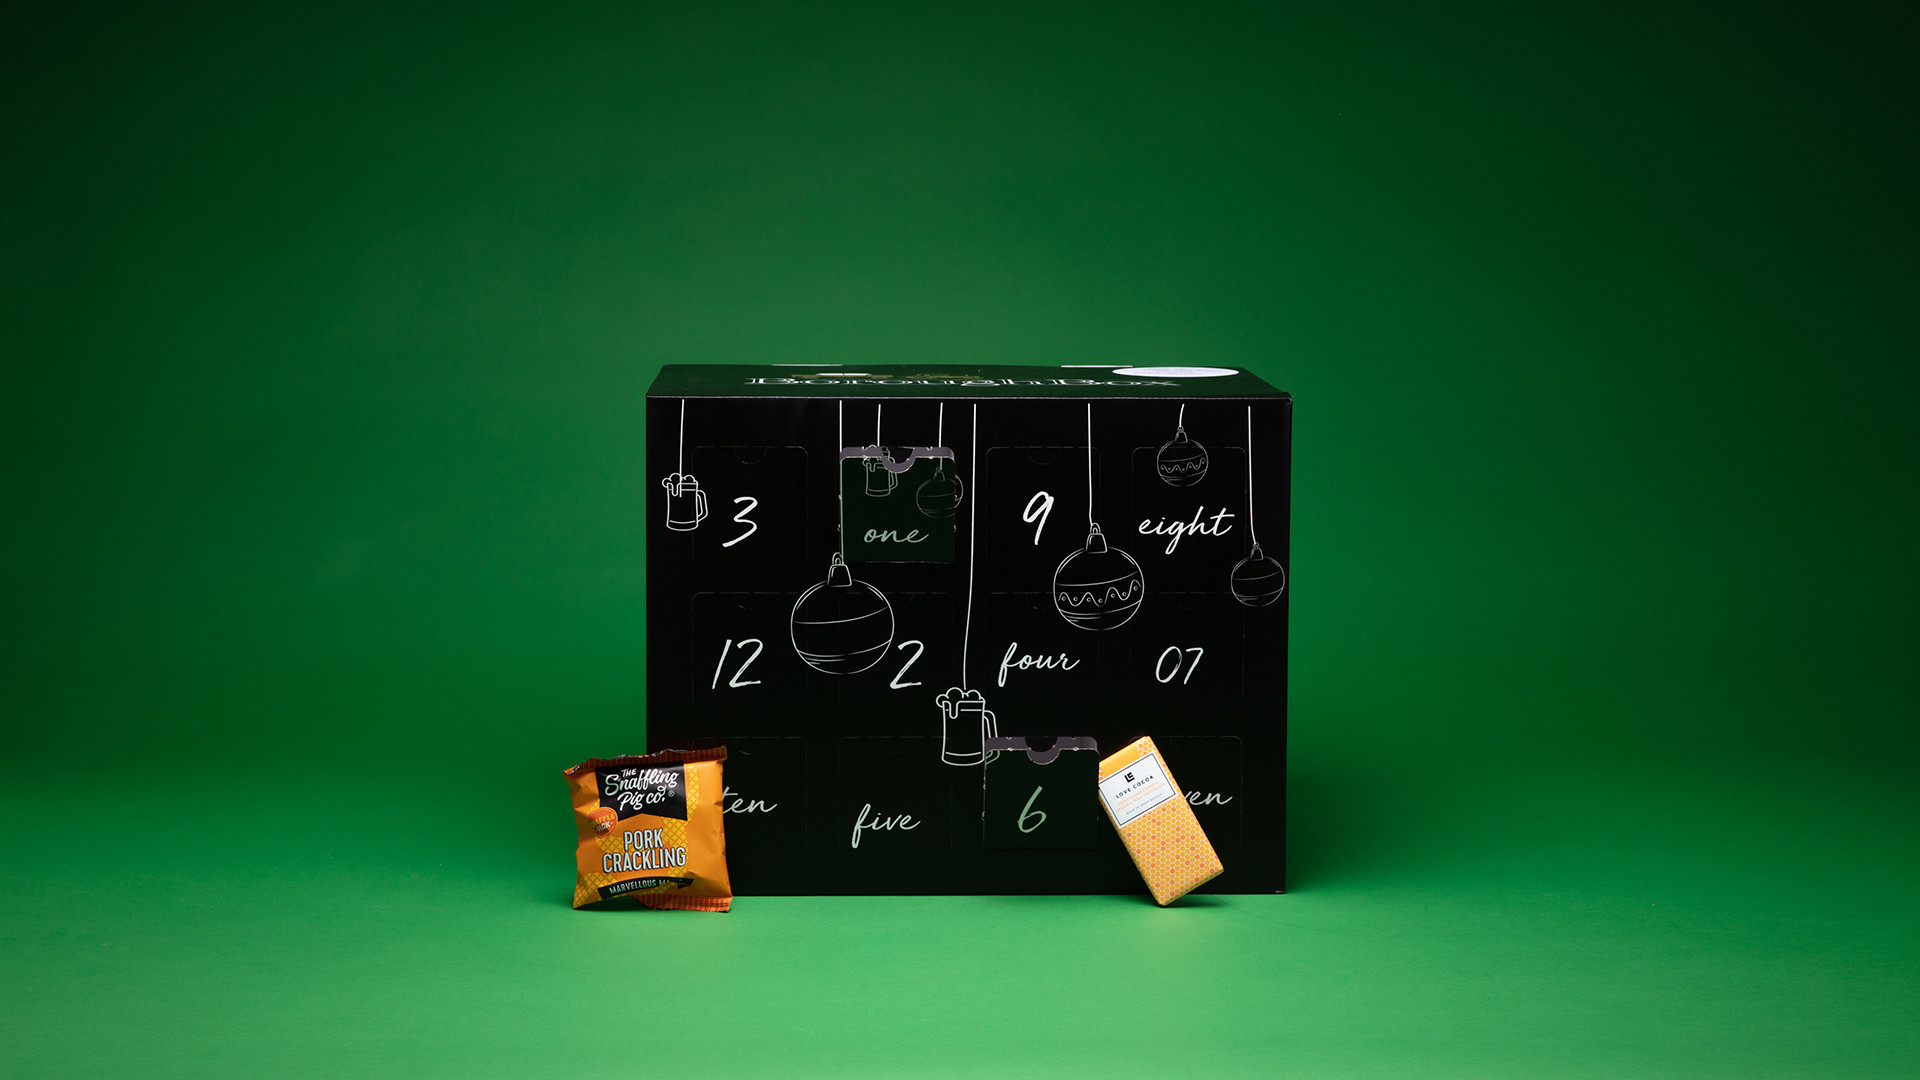 Borough Box Christmas snacking feast advent calendar, £79.99